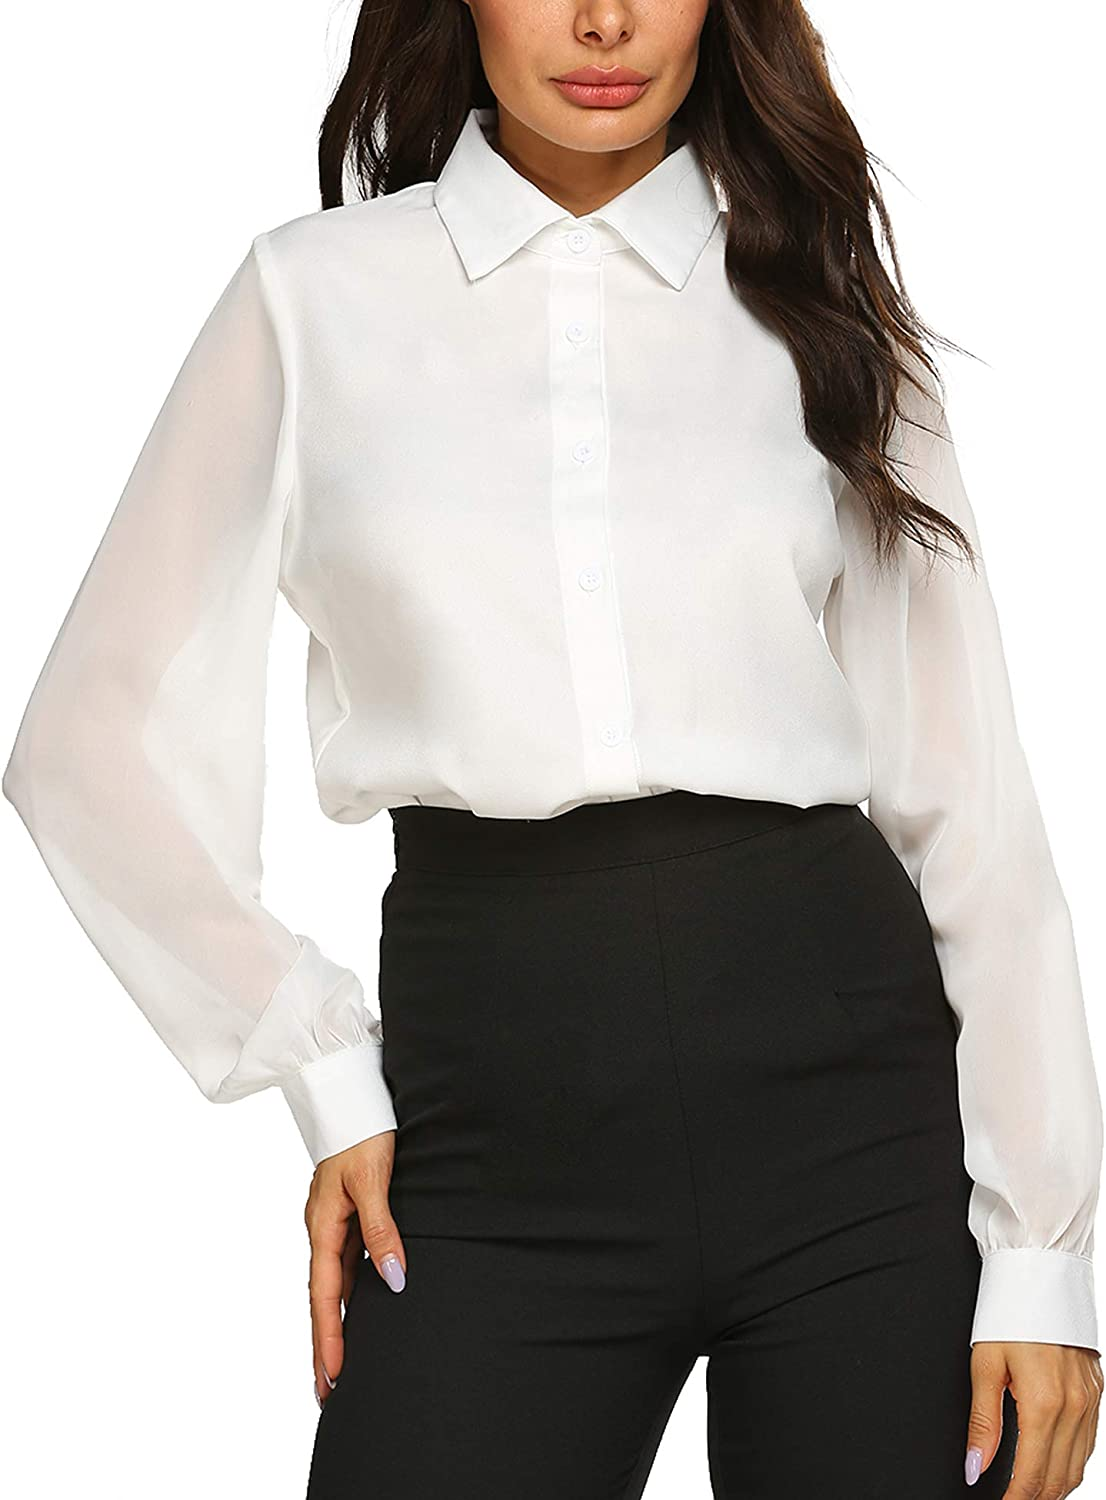 Womens Blouses Bow Tie Neck Long Sleeve Office Work Chiffon Elegant Patchwork Casual Button Down Shirts